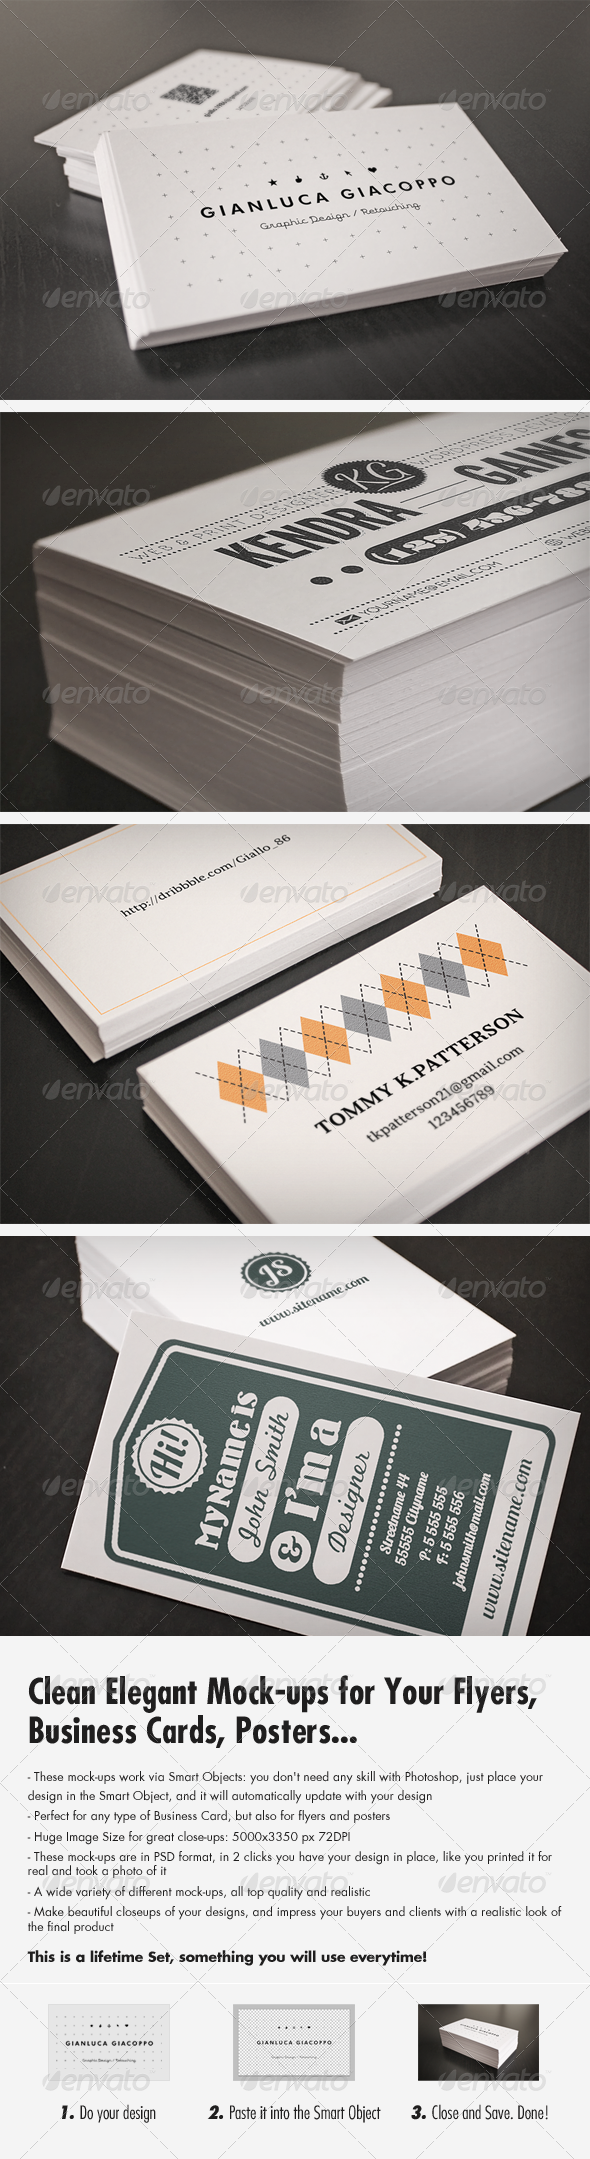 Flyer and Business Card Clean Realistic Mockups - Business Cards Print